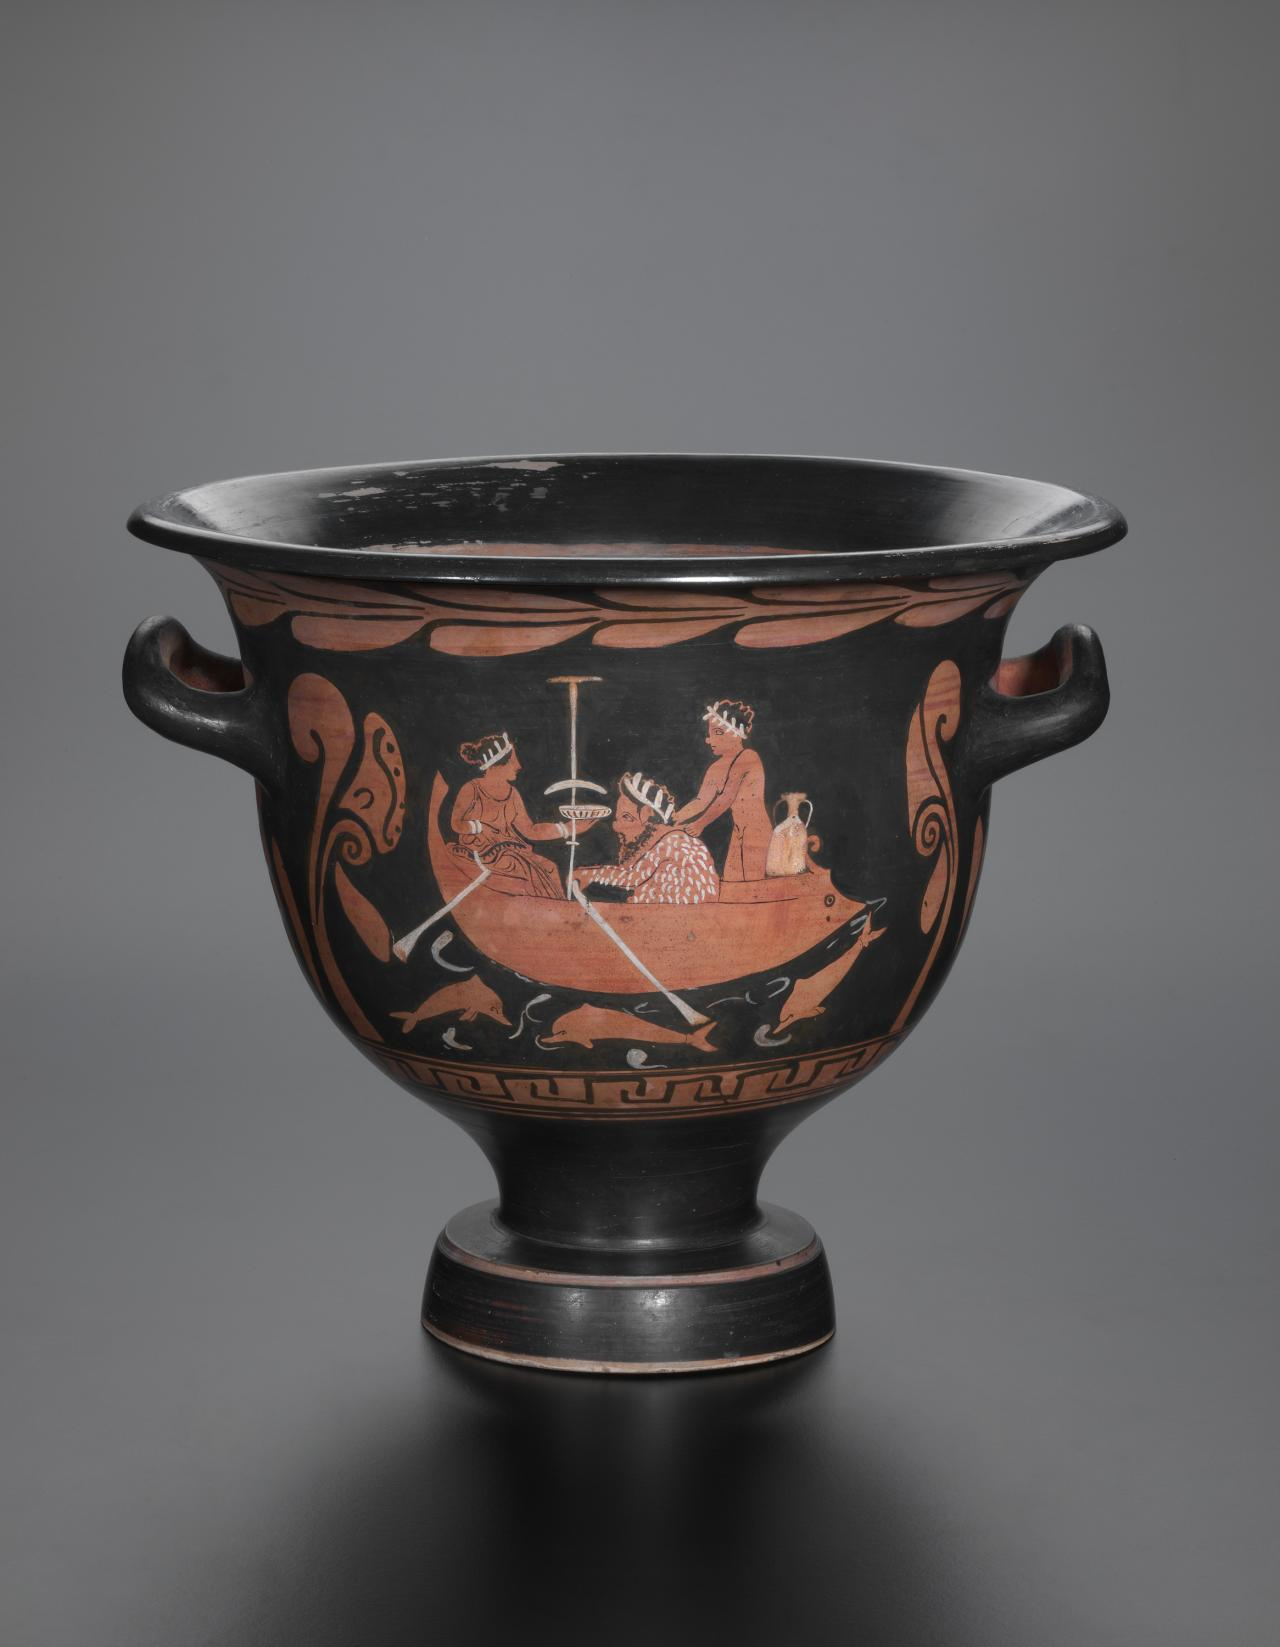 Bell krater (Campanian red-figure ware)